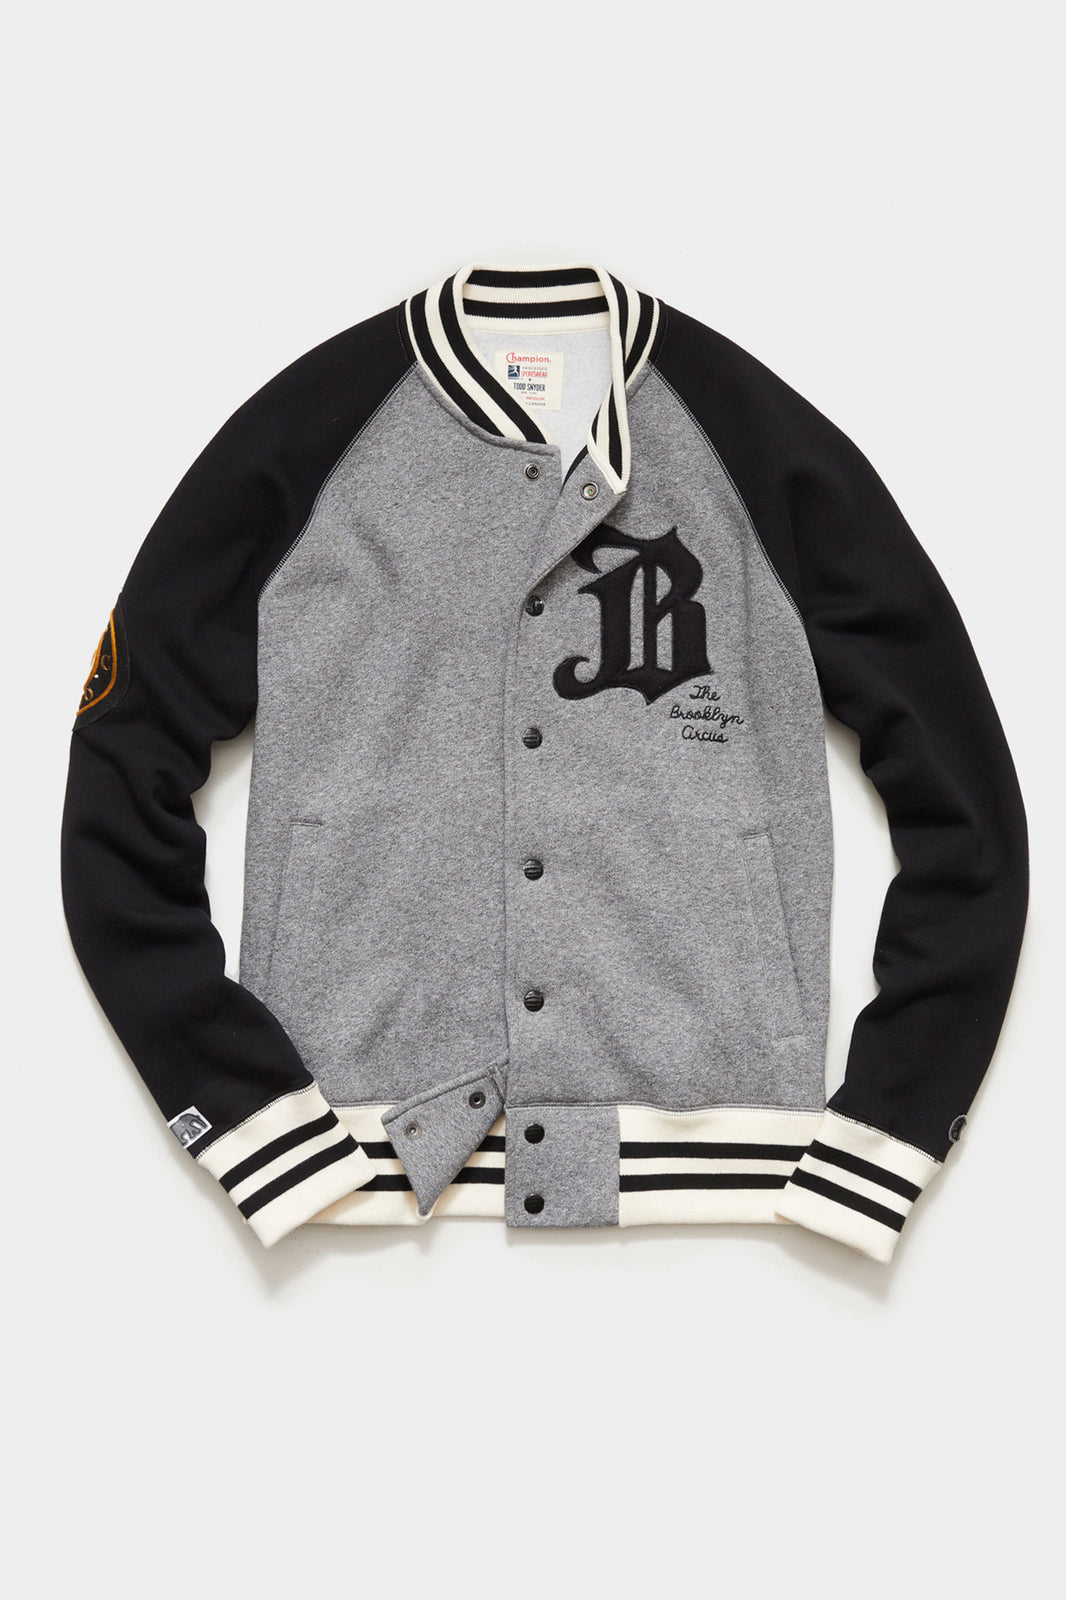 TS x Champion Limited Edition: The Brooklyn Circus Knit Varsity